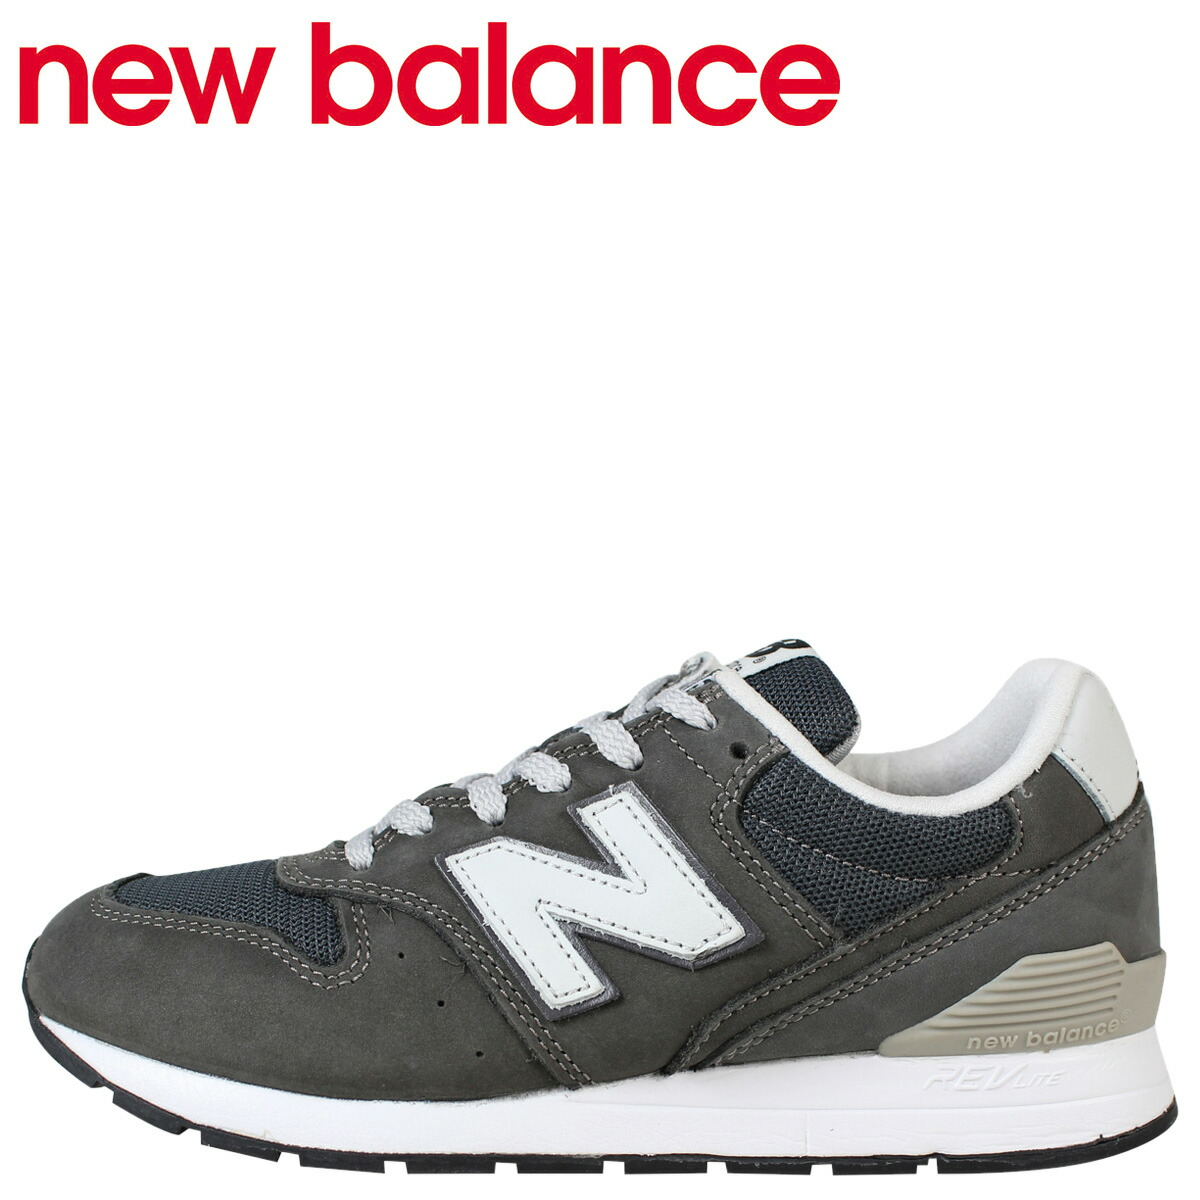 70b969ae8e1 It was originally cure orthotic shoes or flat feet insoles manufacturers.  Model